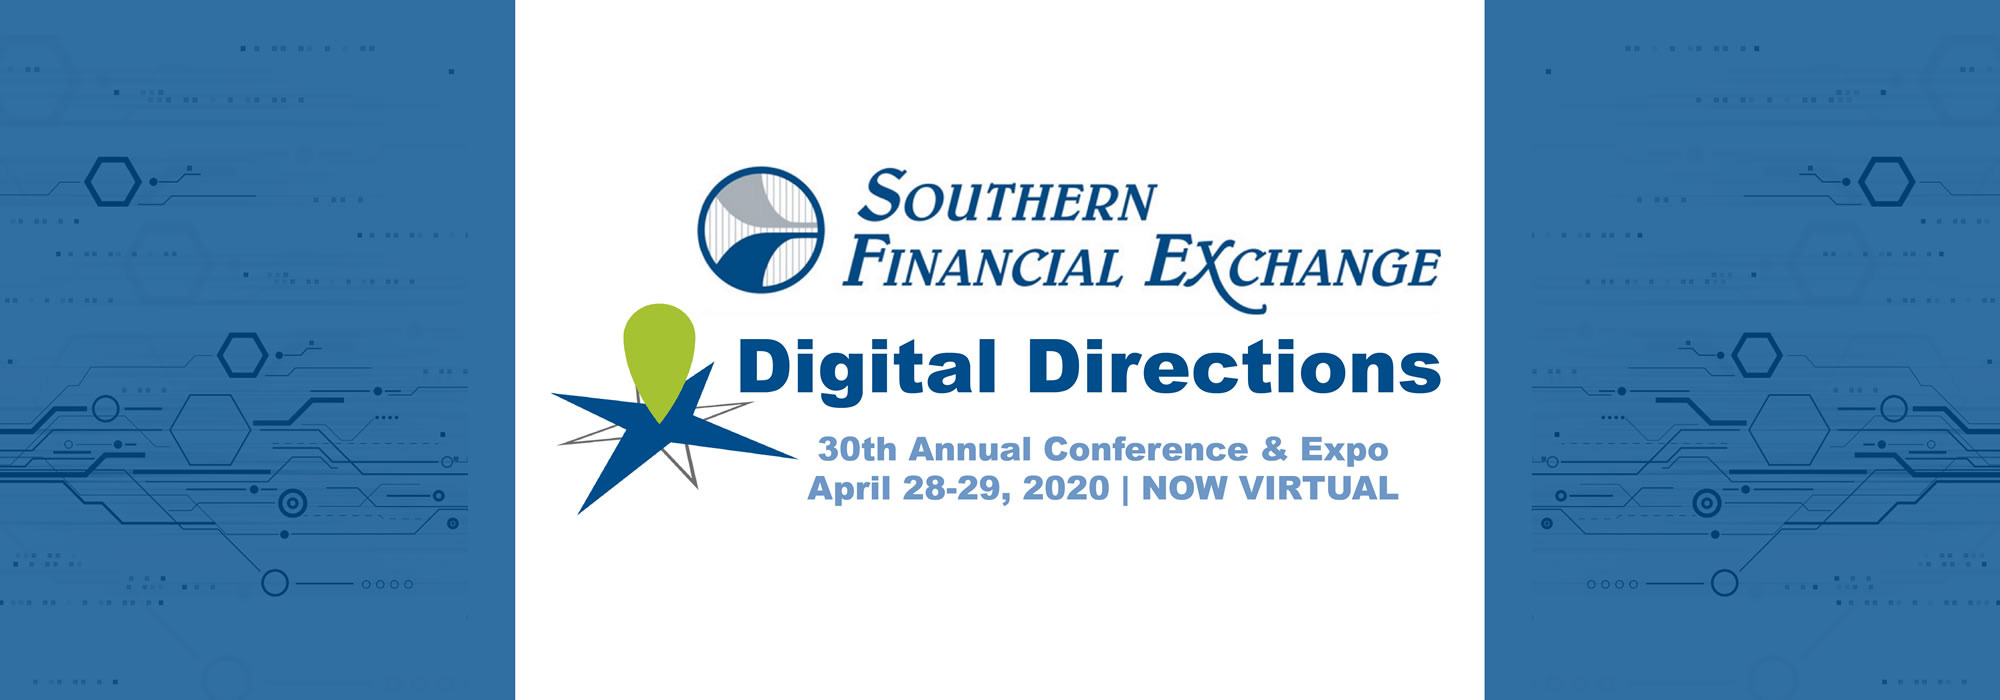 SFE Conference and Expo